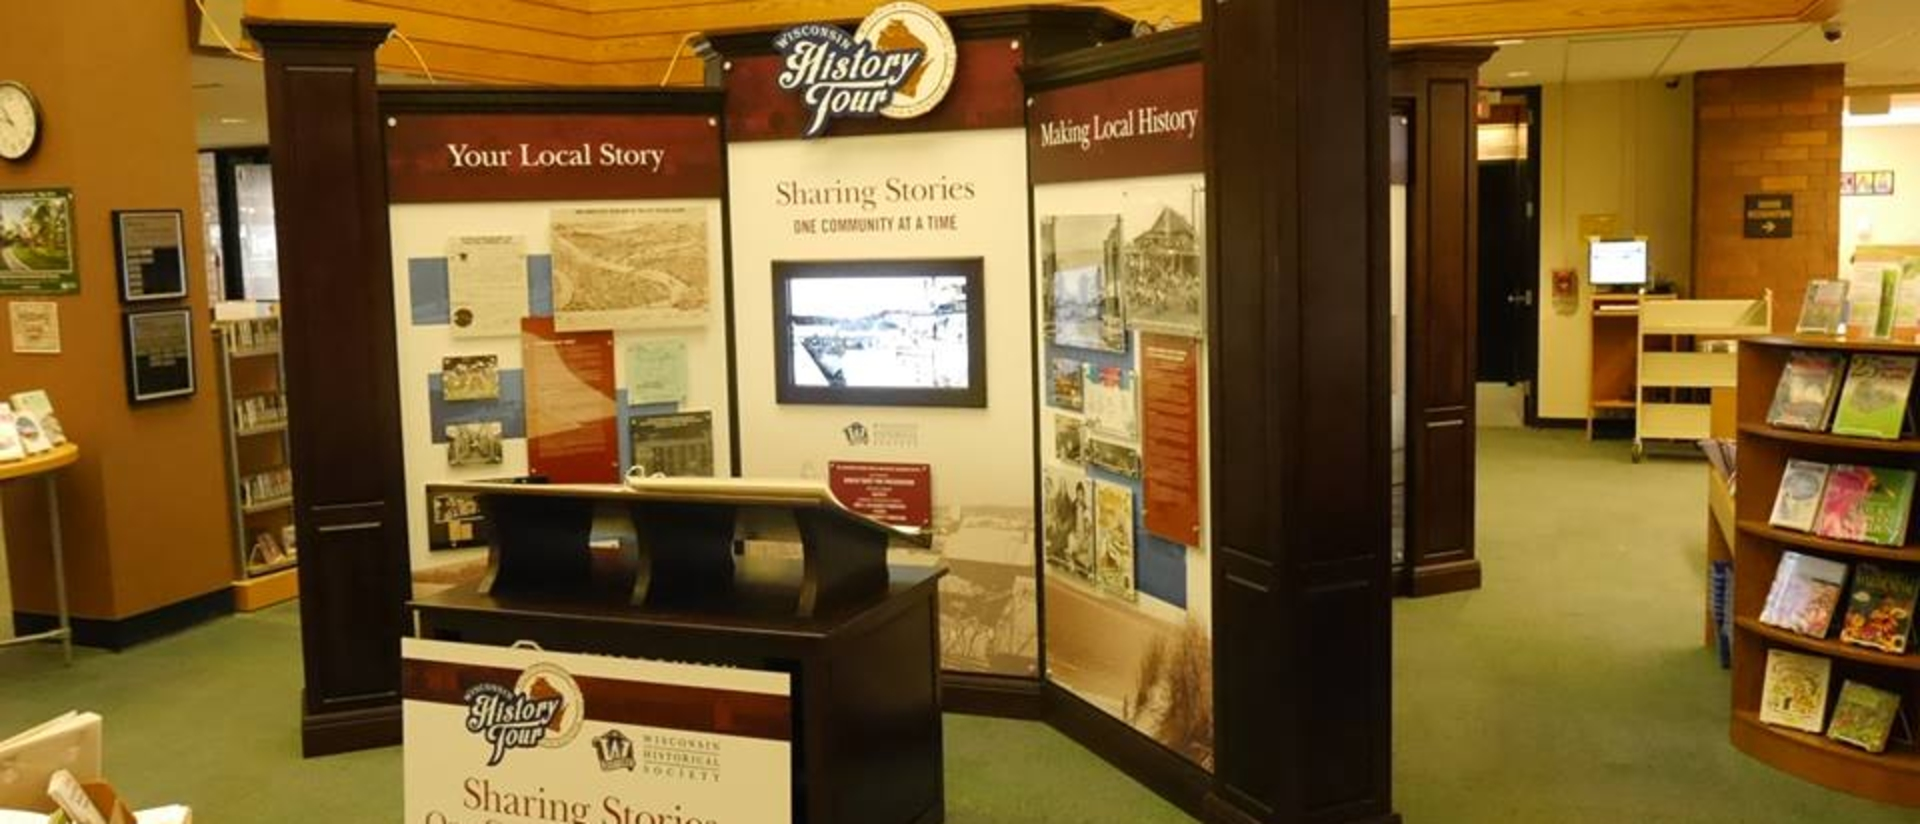 Wisconsin History Tour display